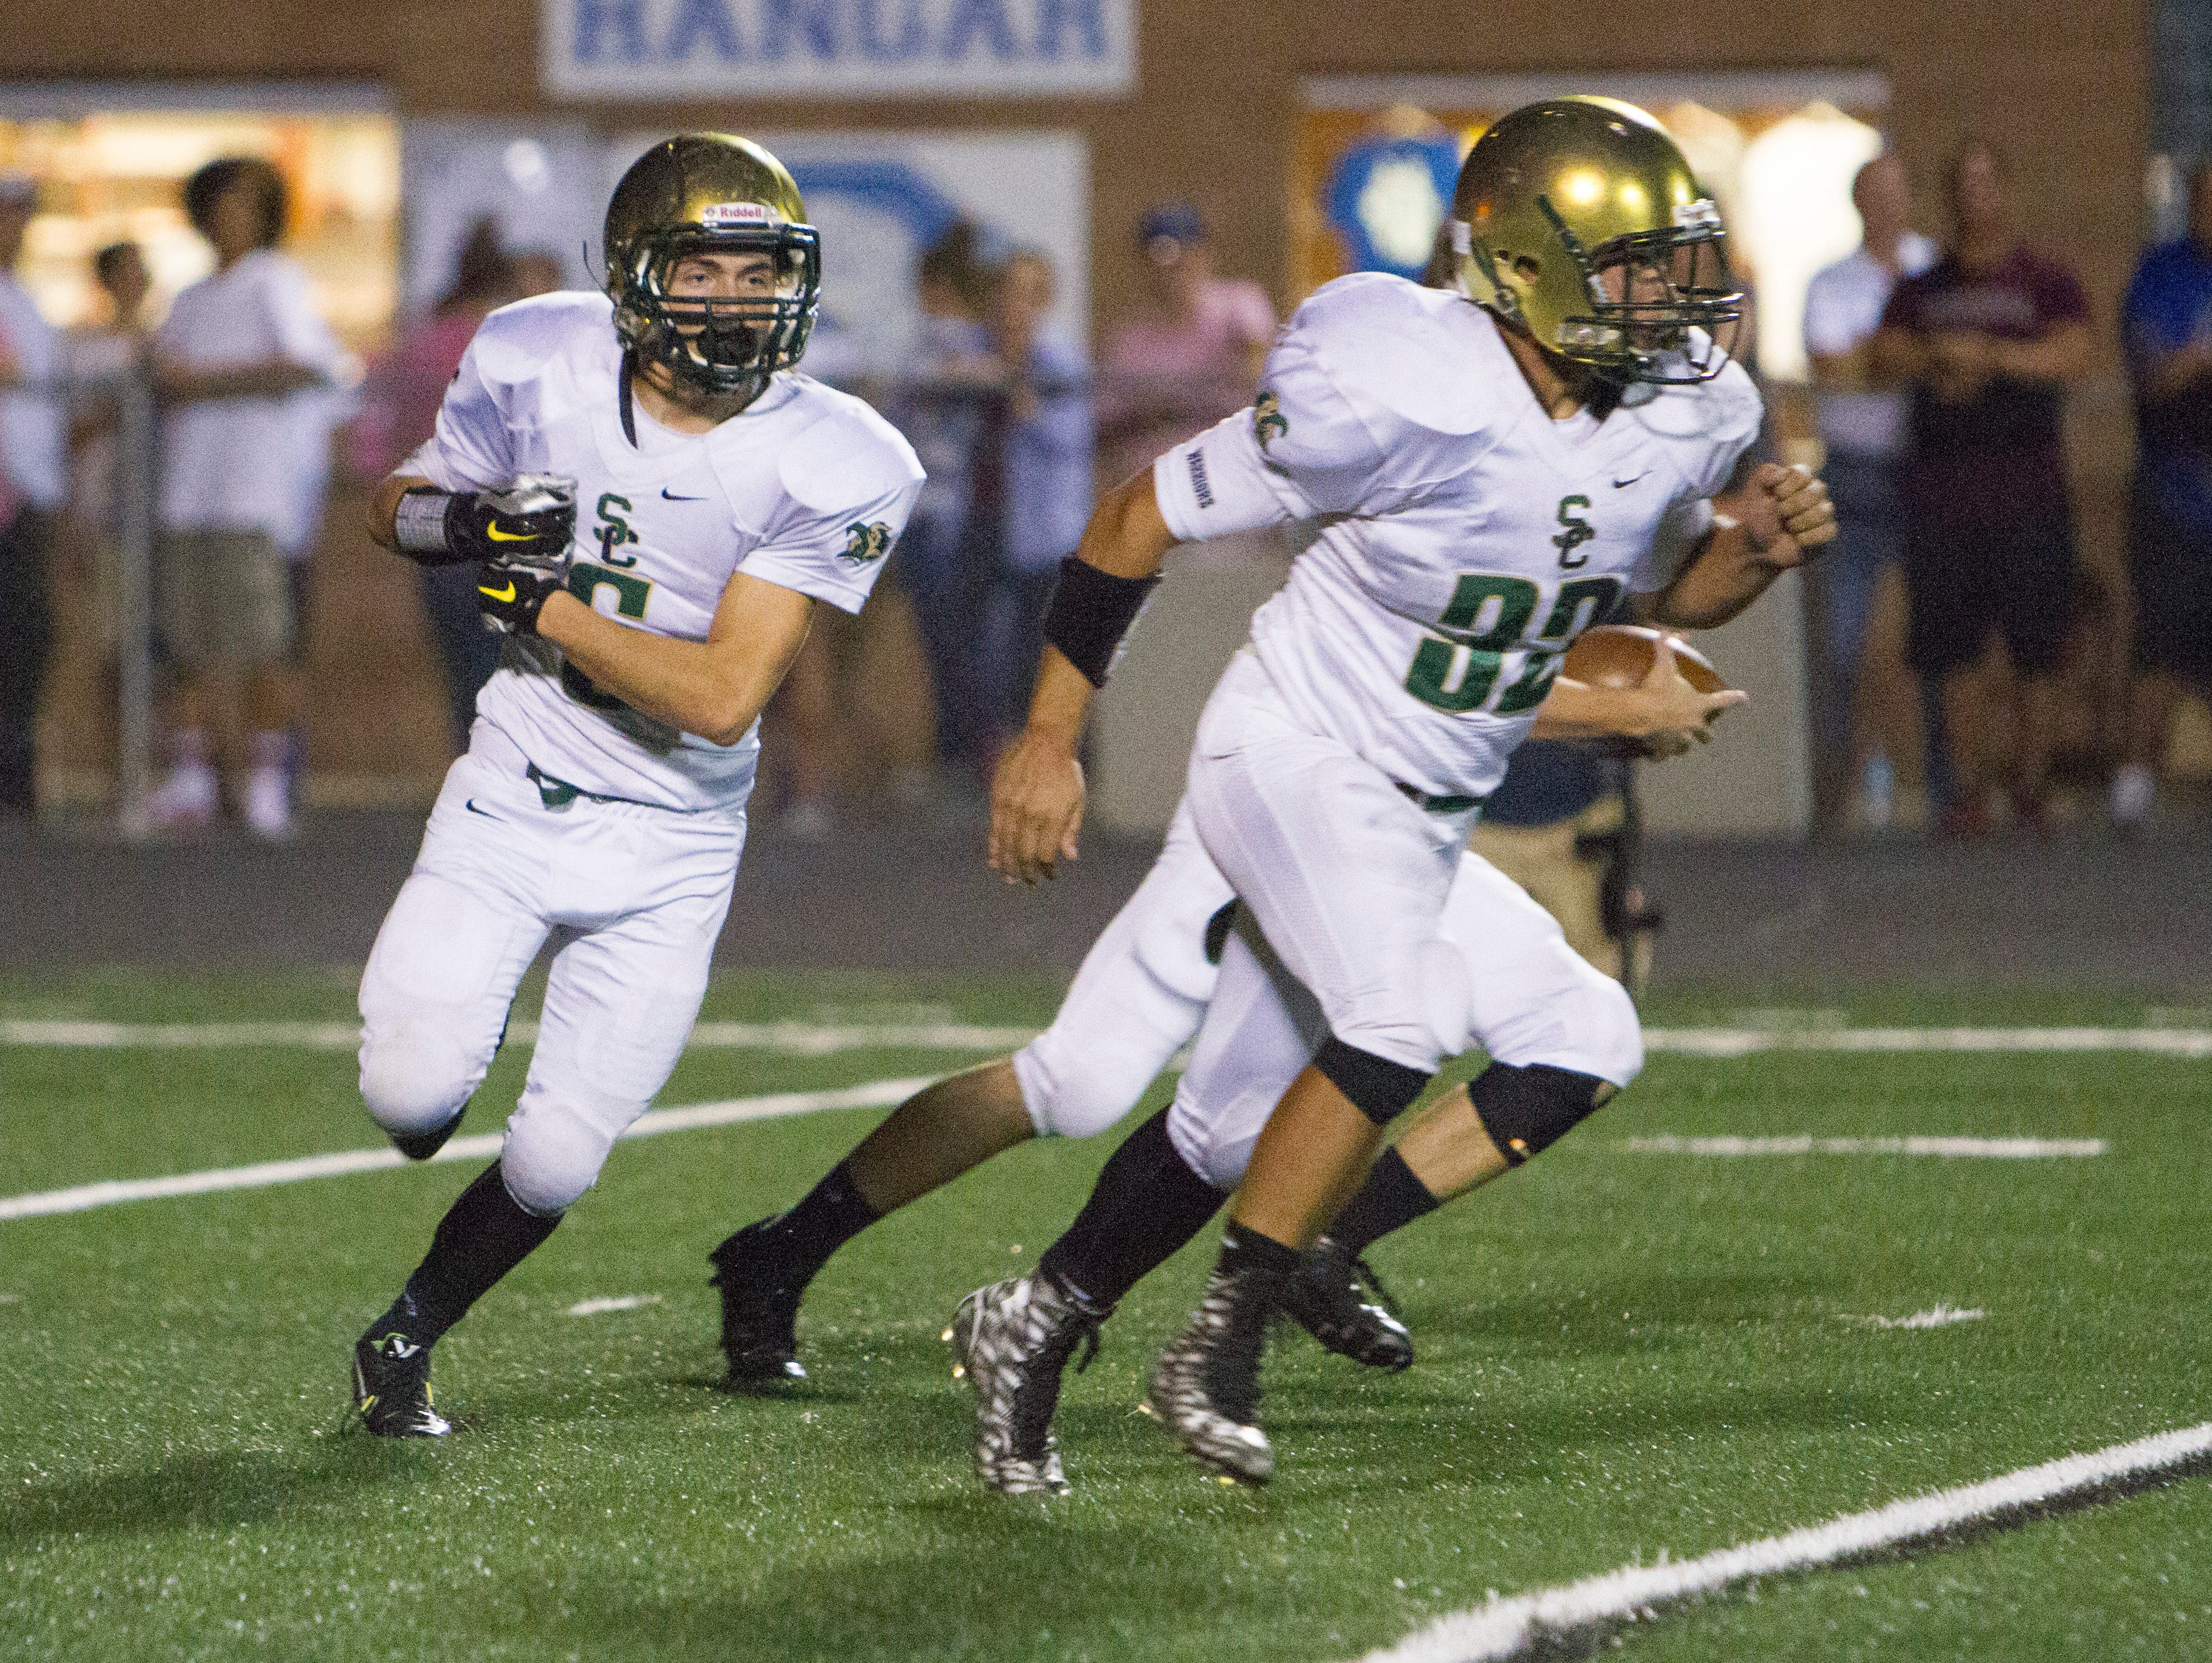 Dixie High and Snow Canyon battle it out at Flyer Field Thursday, Oct. 1, 2015.